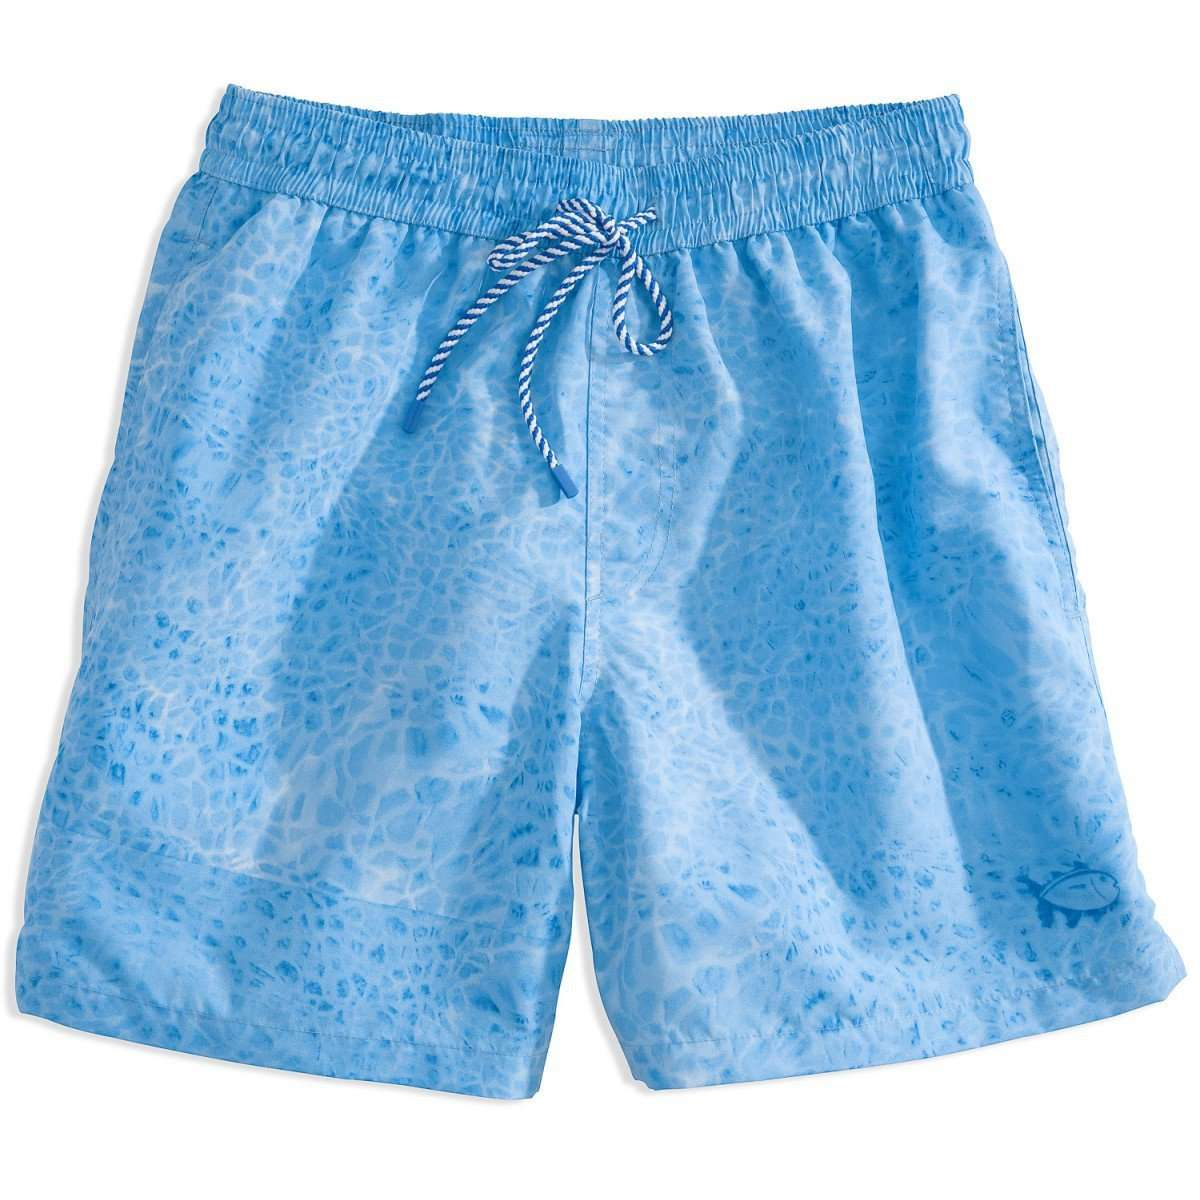 Men's Swimsuits - Tide Pool Swim Trunk In Blue By Southern Tide